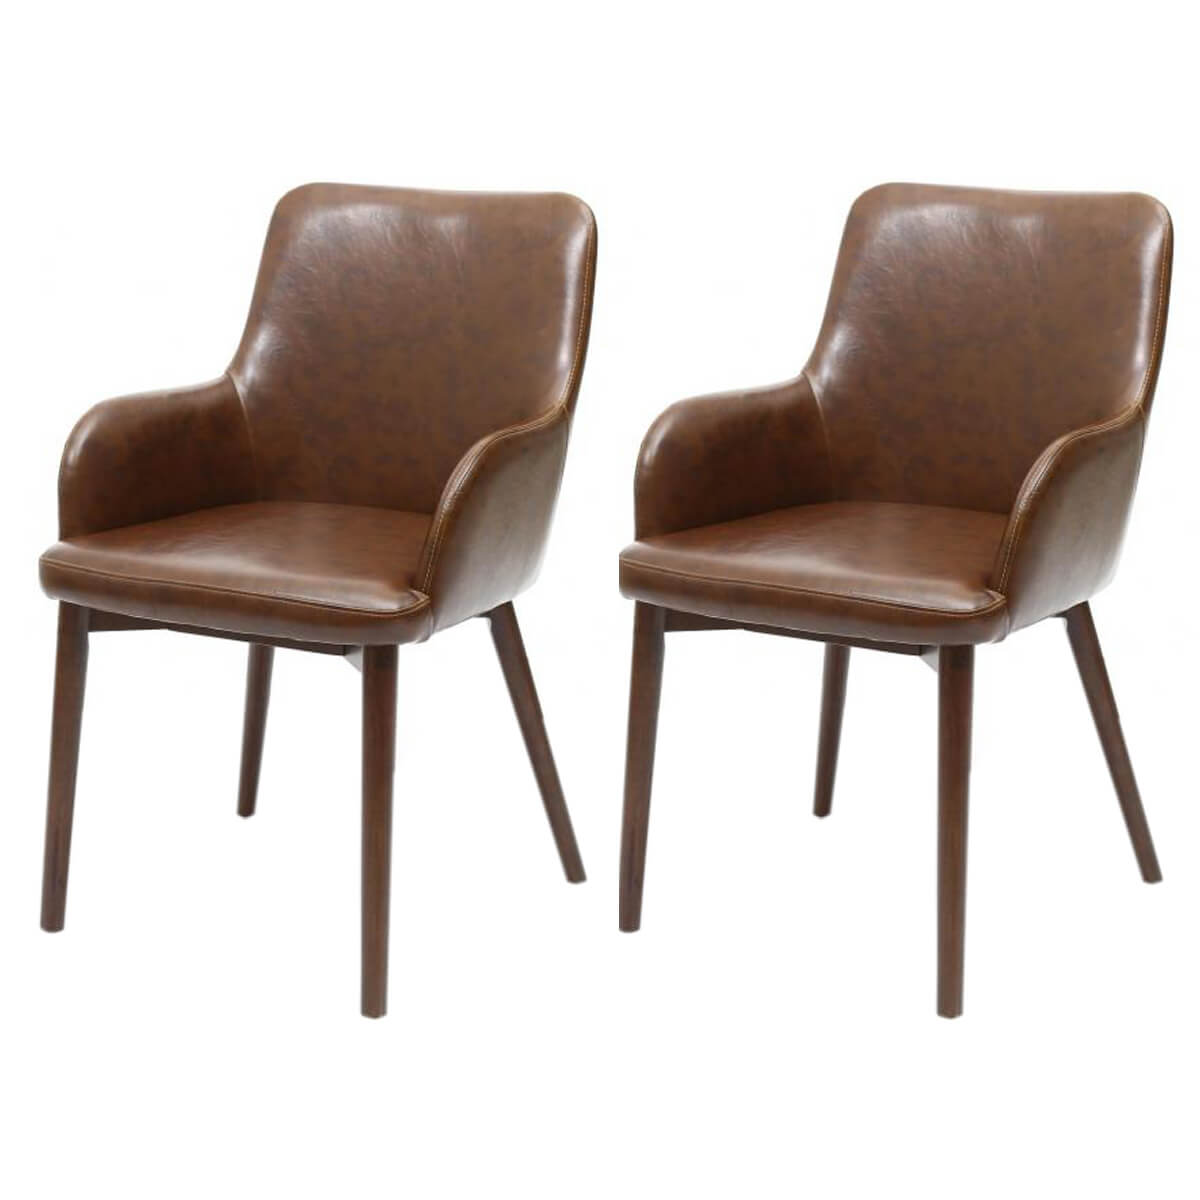 Brown Leather Chair Sidcup Vintage Brown Leather Dining Chairs Free Delivery